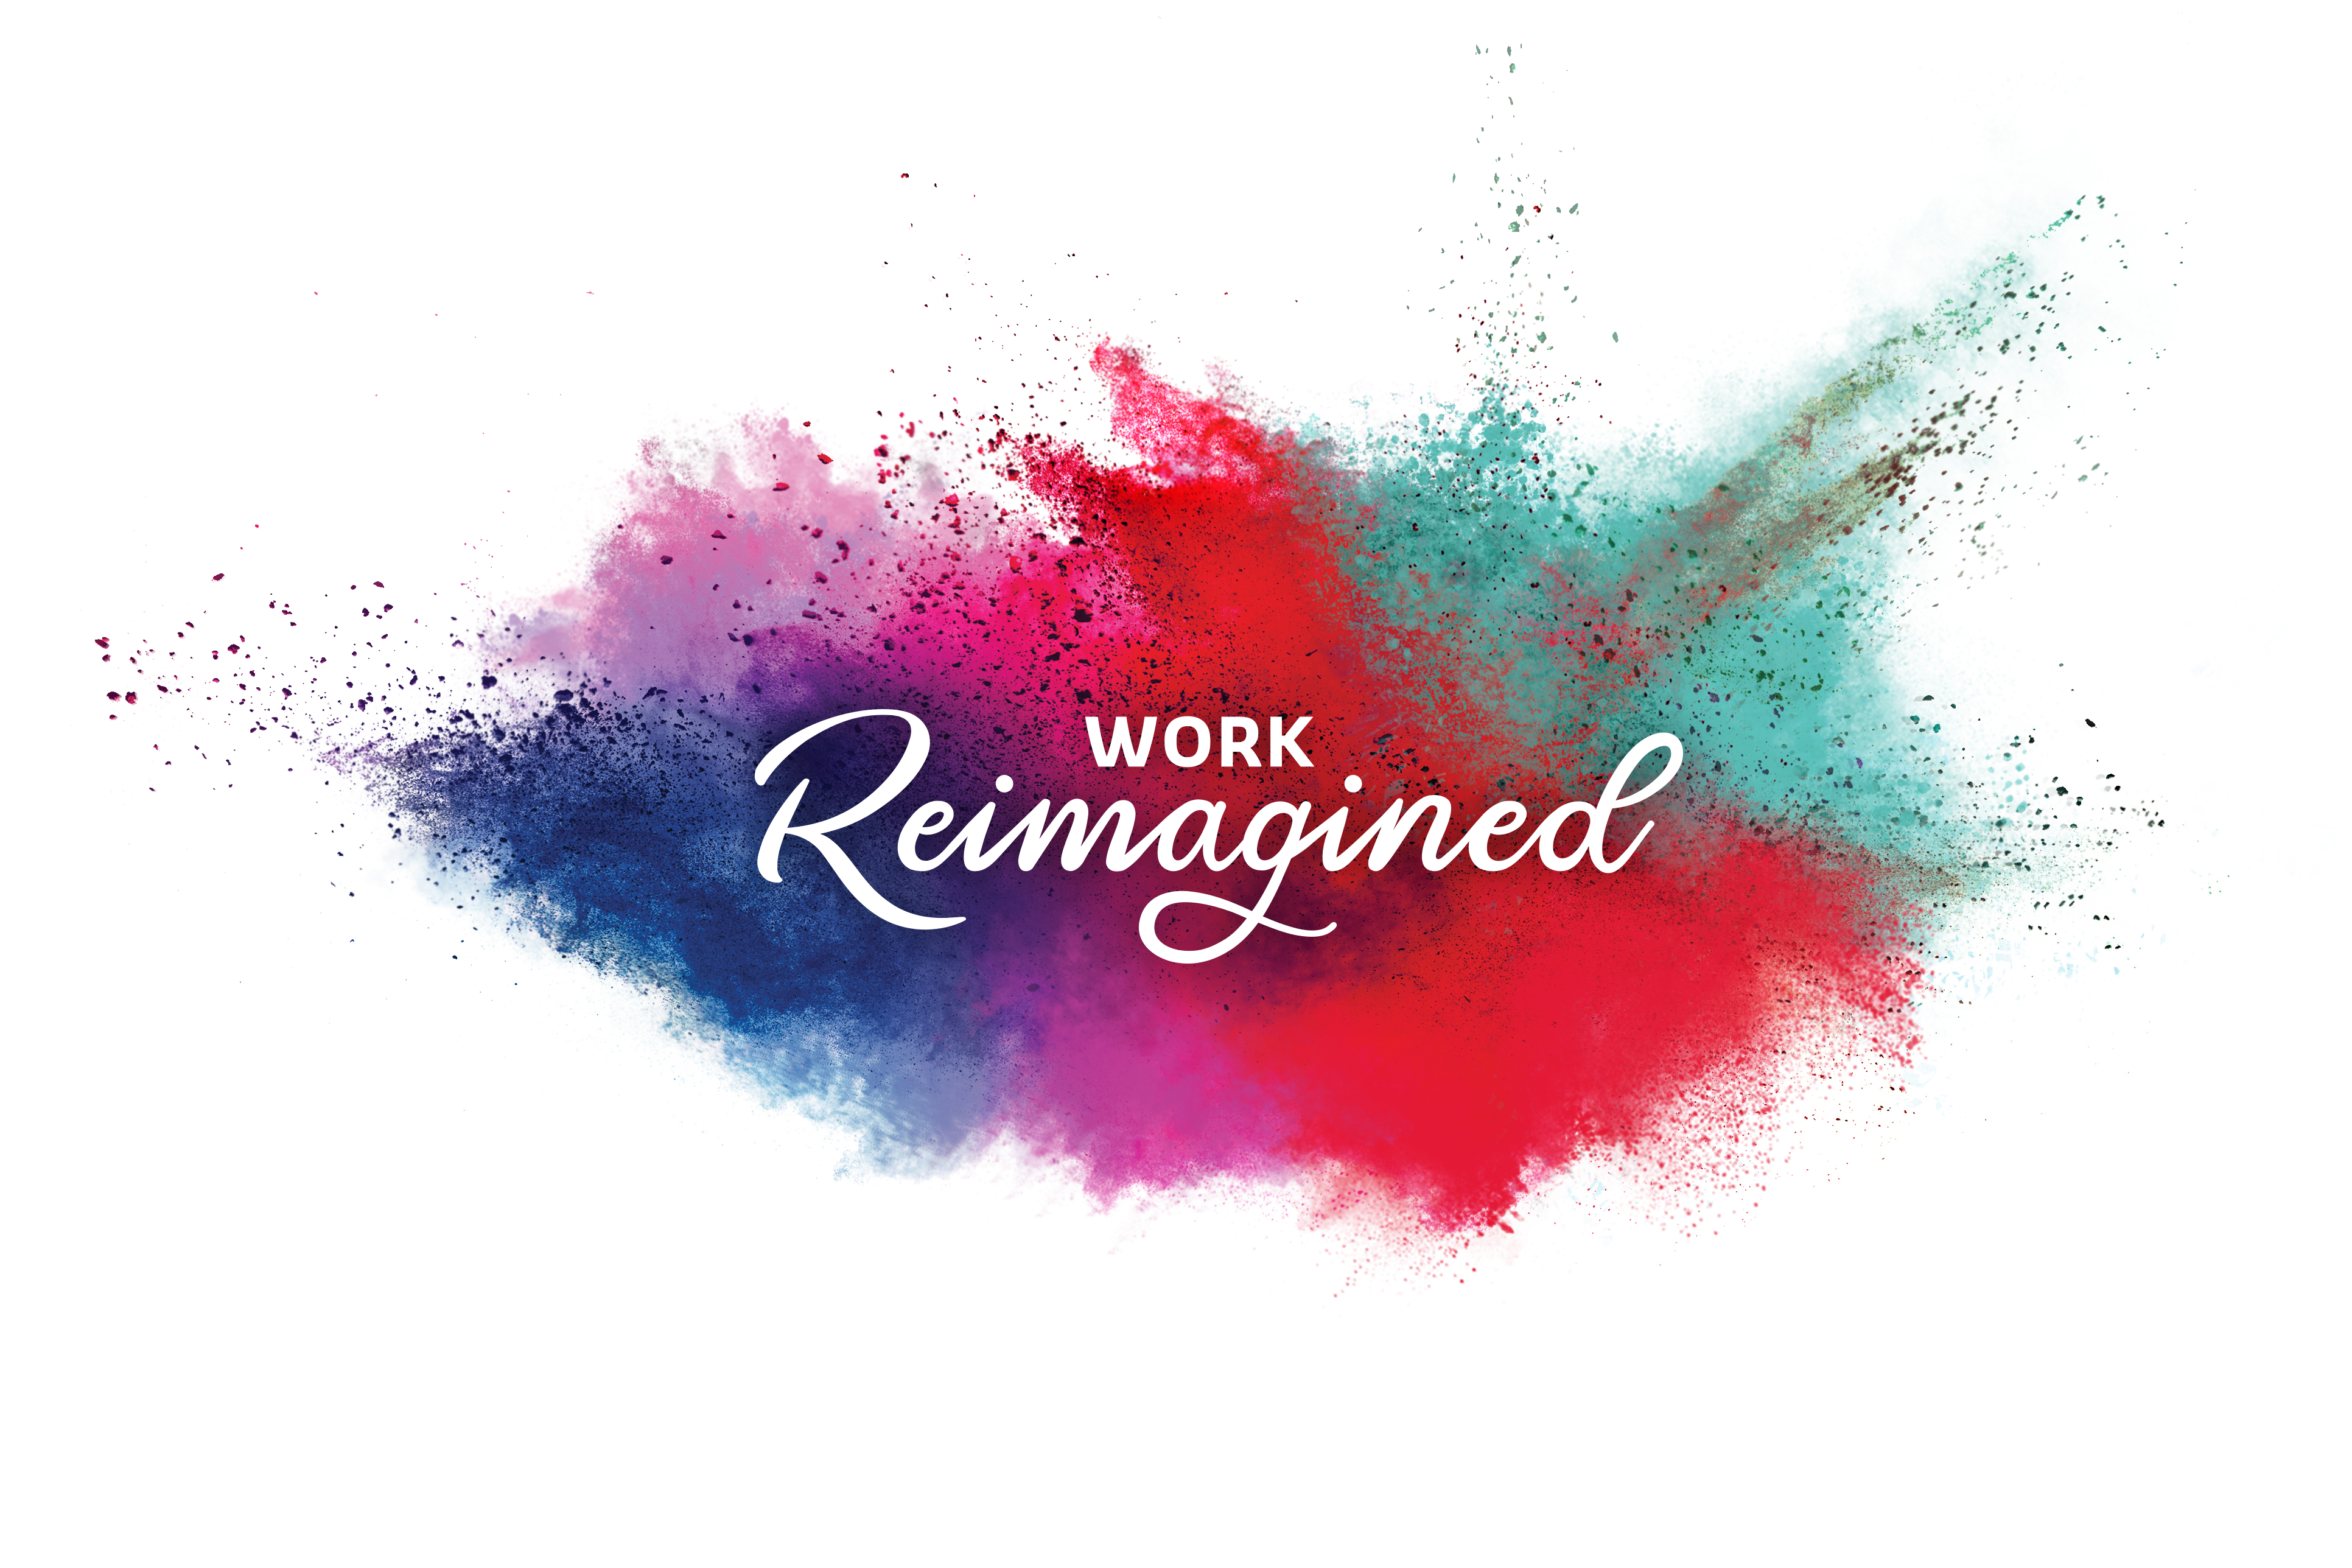 WORK REIMAGINED TRANSPARENT HI RES